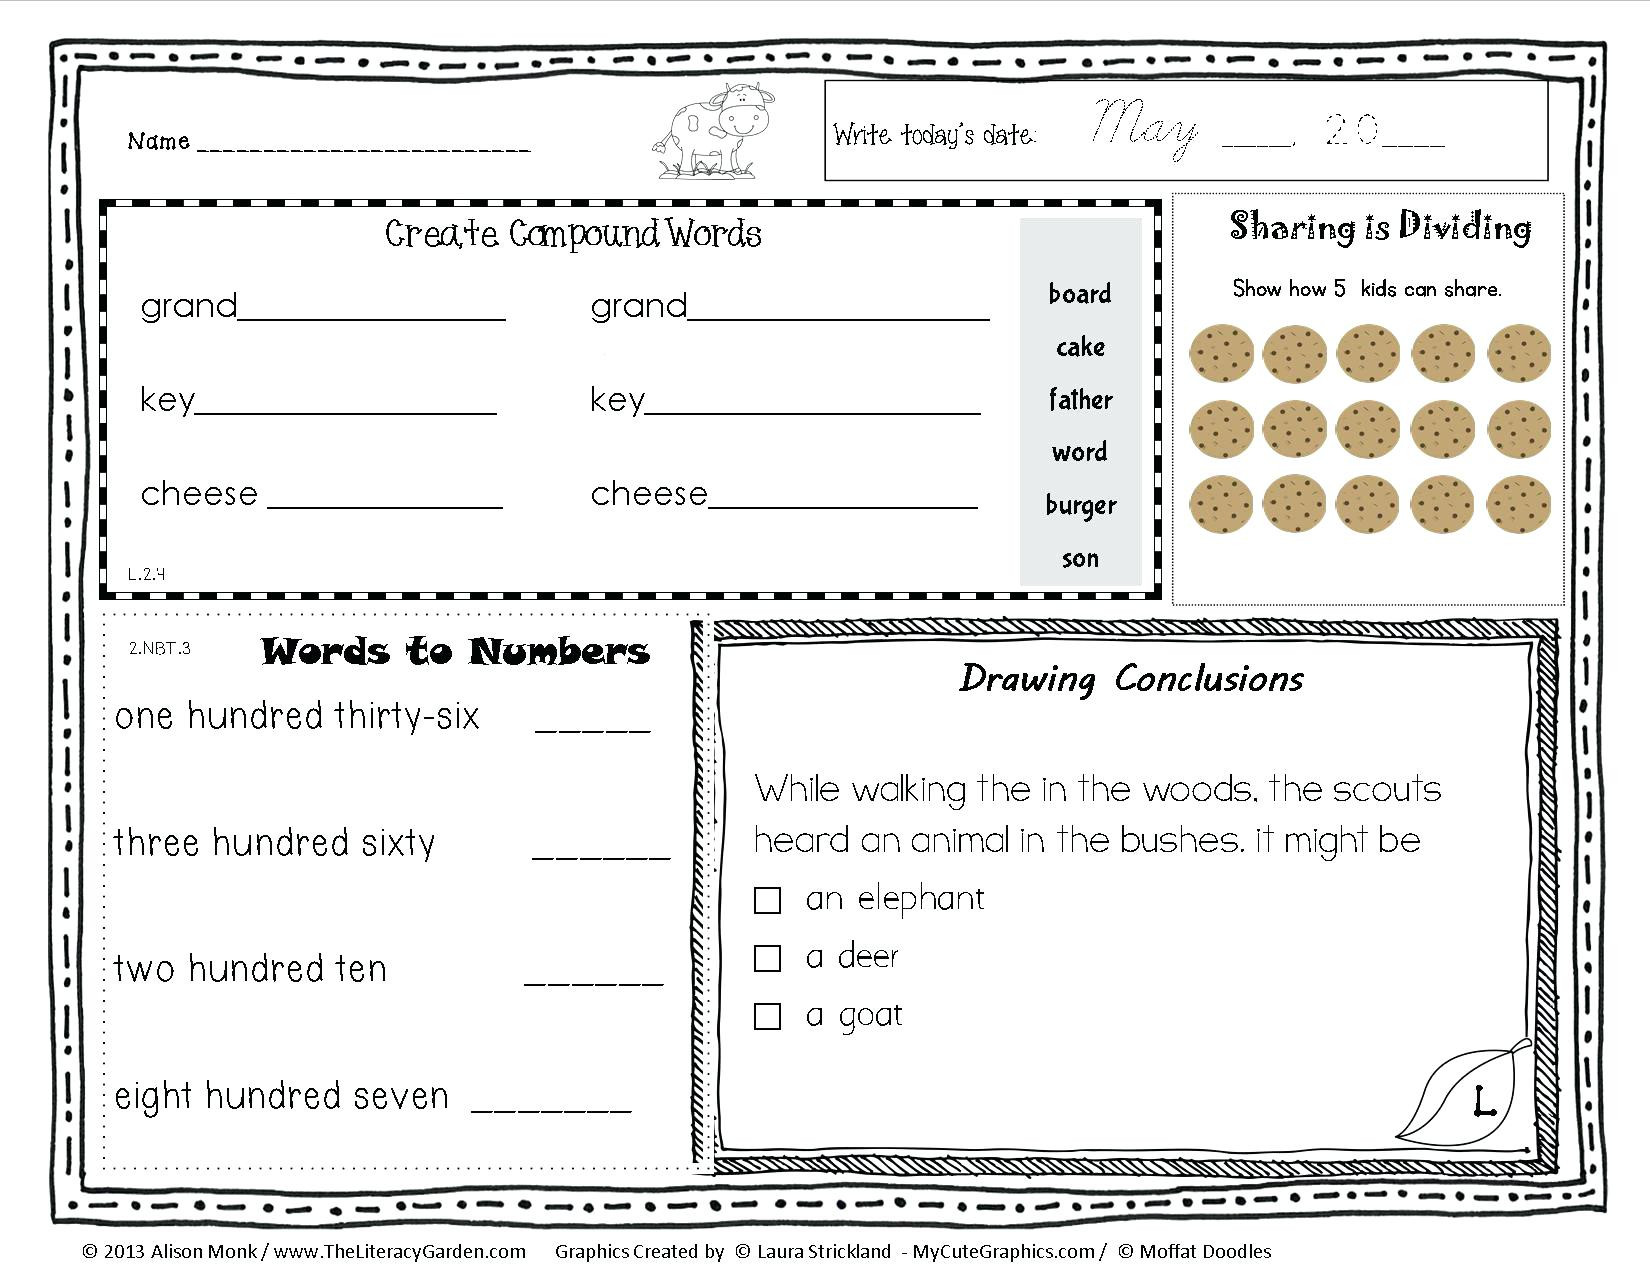 Drawing Conclusions Worksheets 2nd Grade Timothyfregosoub